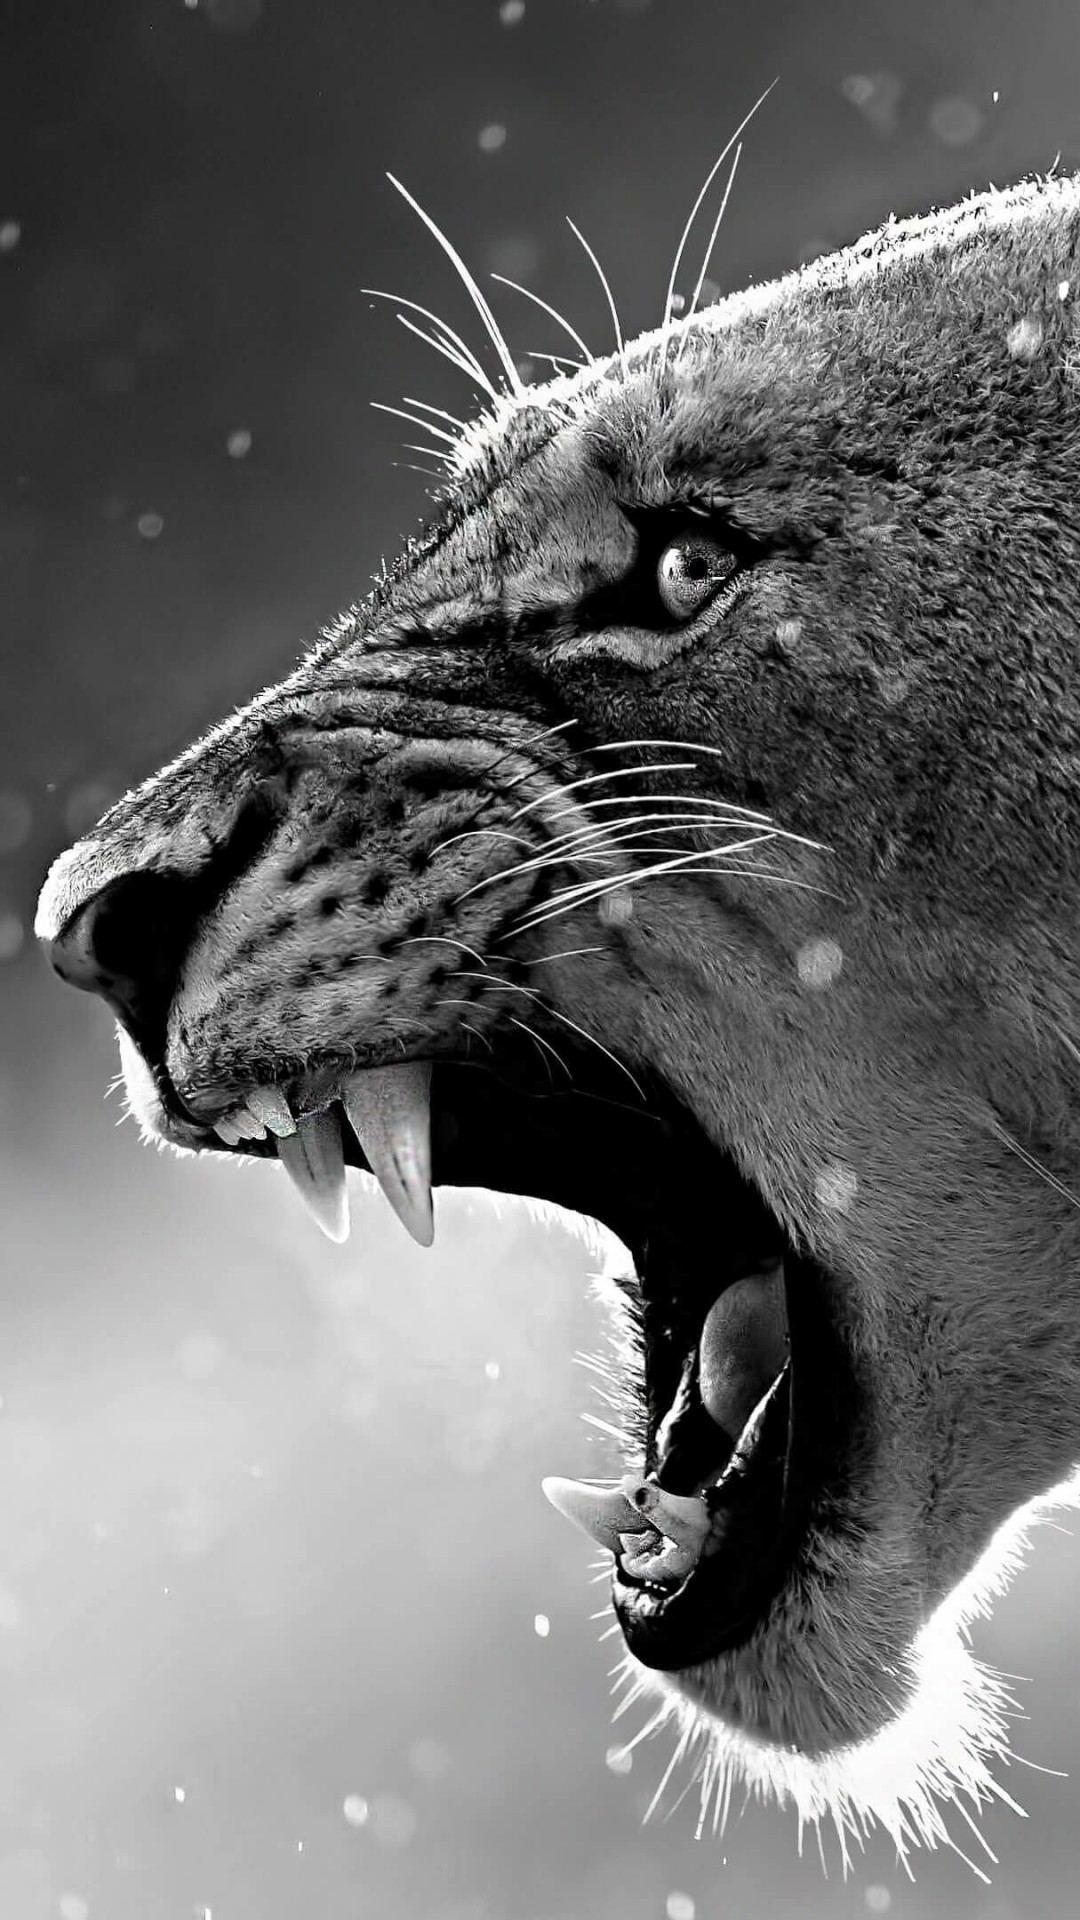 Lioness in Black & White Wallpaper for SAMSUNG Galaxy S4